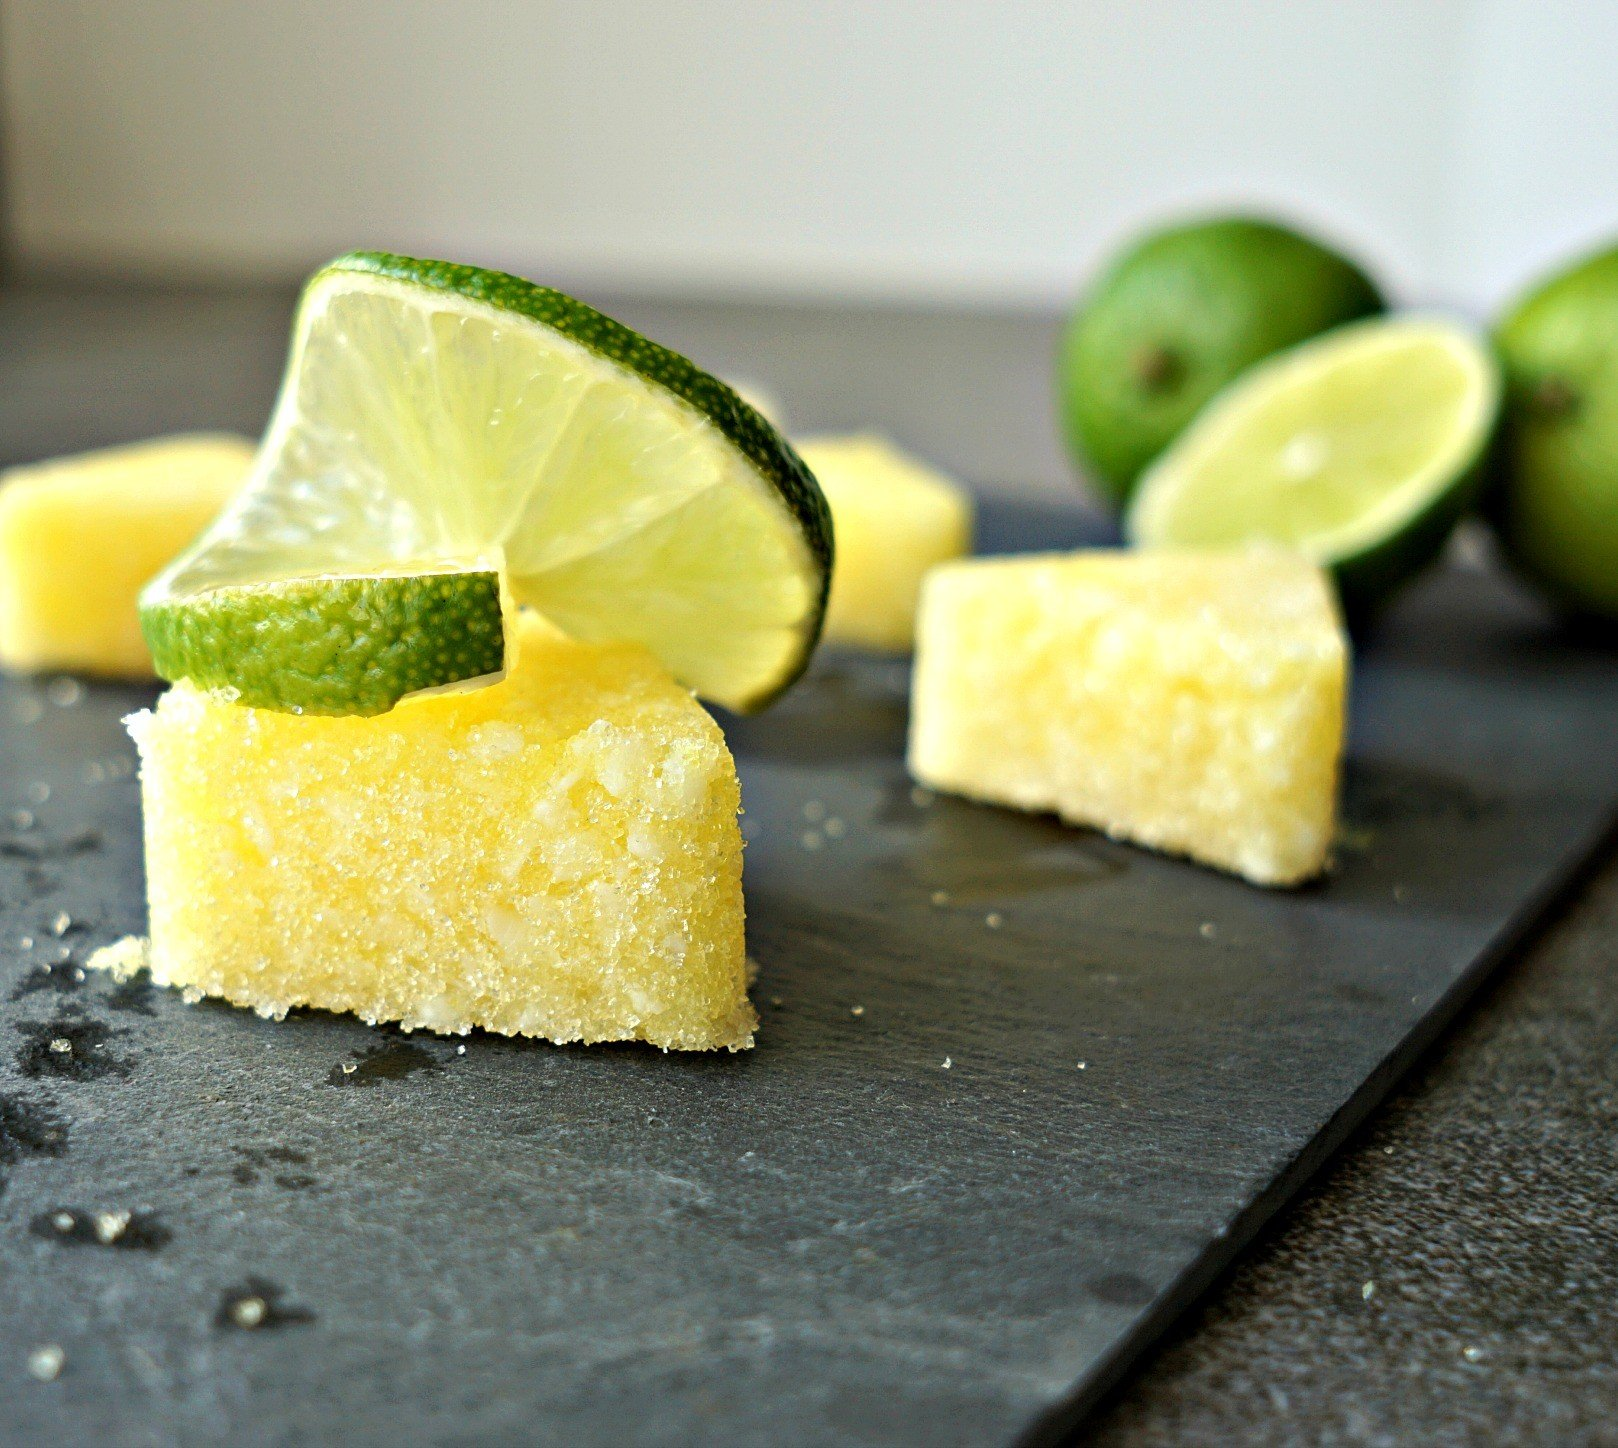 DIY Key Lime Pie Scrub Bars